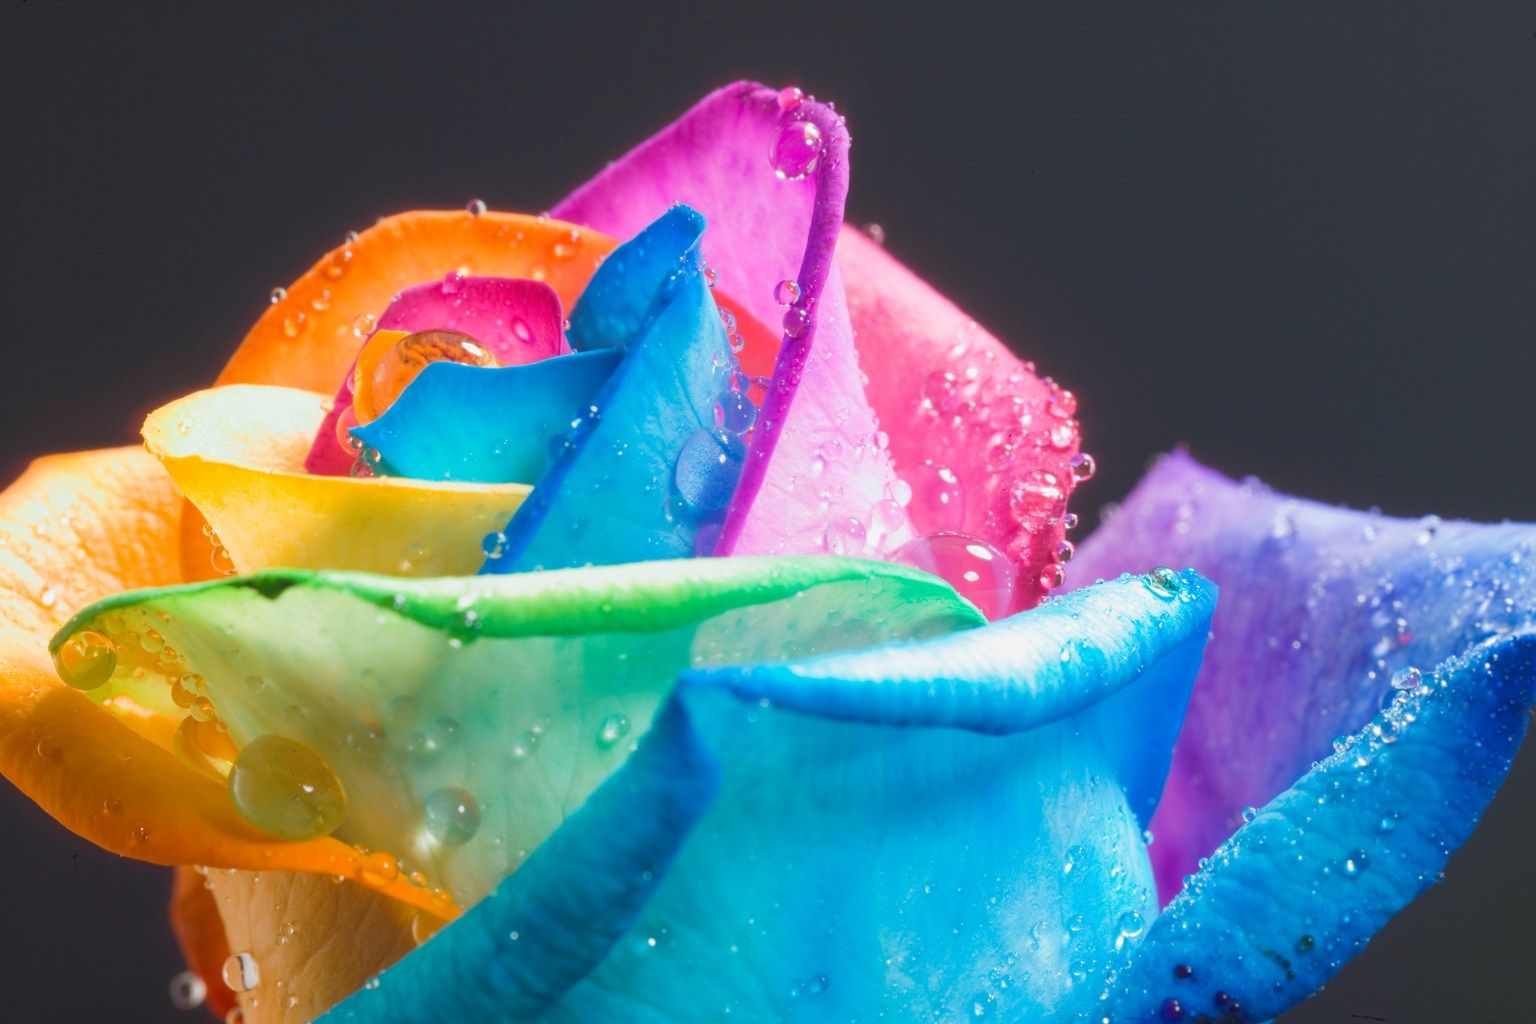 Show Colors Of The Rainbow Absorbs The Water Into Its Petals